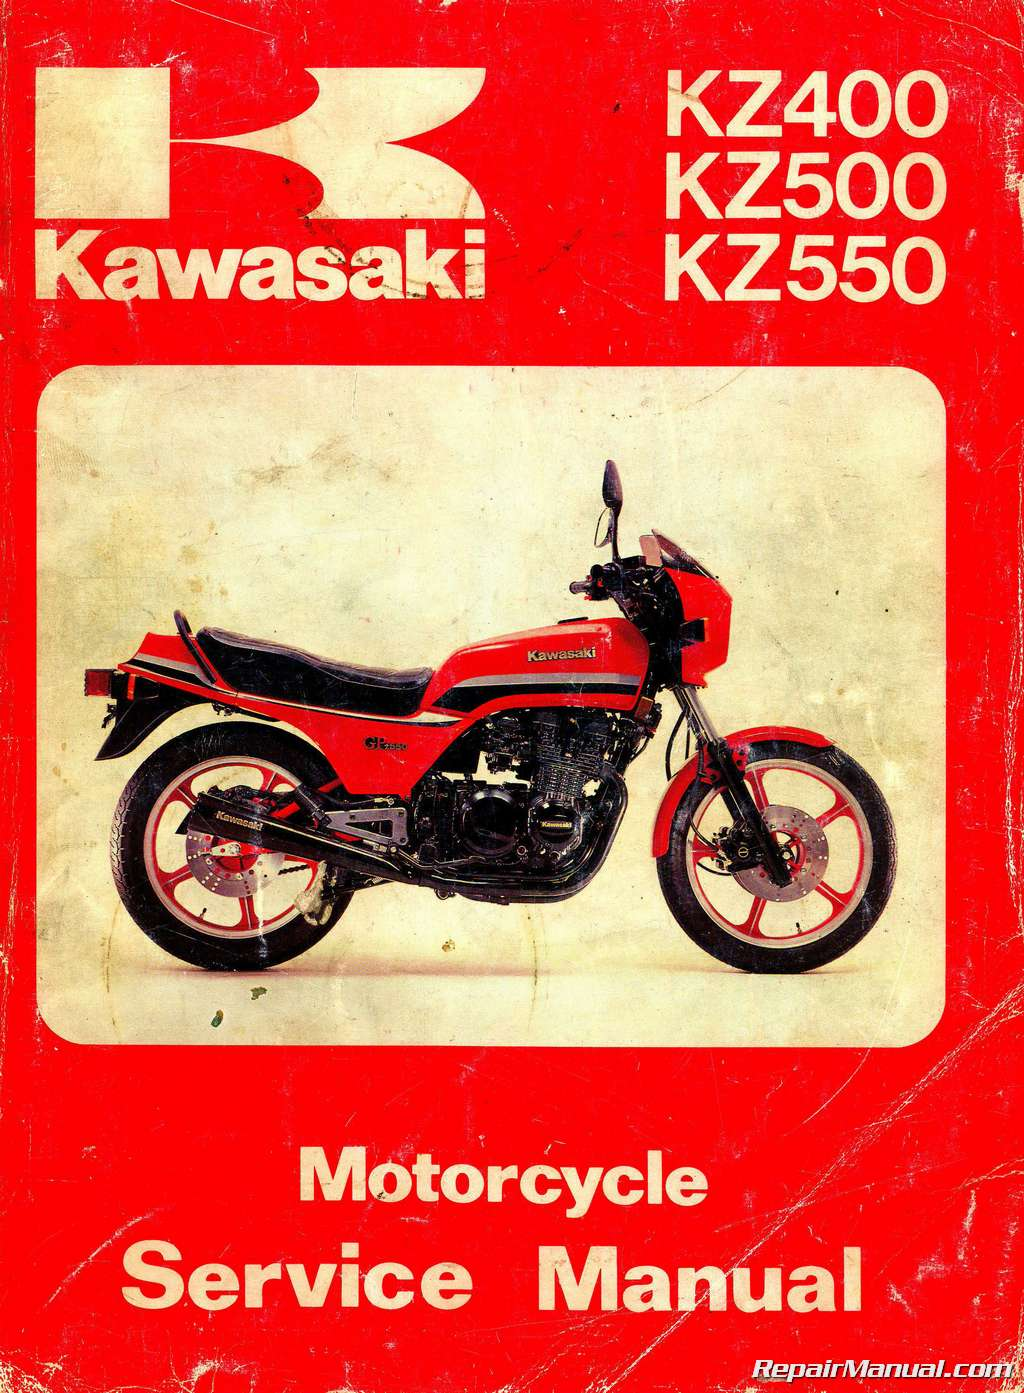 kawasaki kz400 kz500 kz550 motorcycle service manual rh repairmanual com 1979 kawasaki kz 400 manual kawasaki kz 400s manual